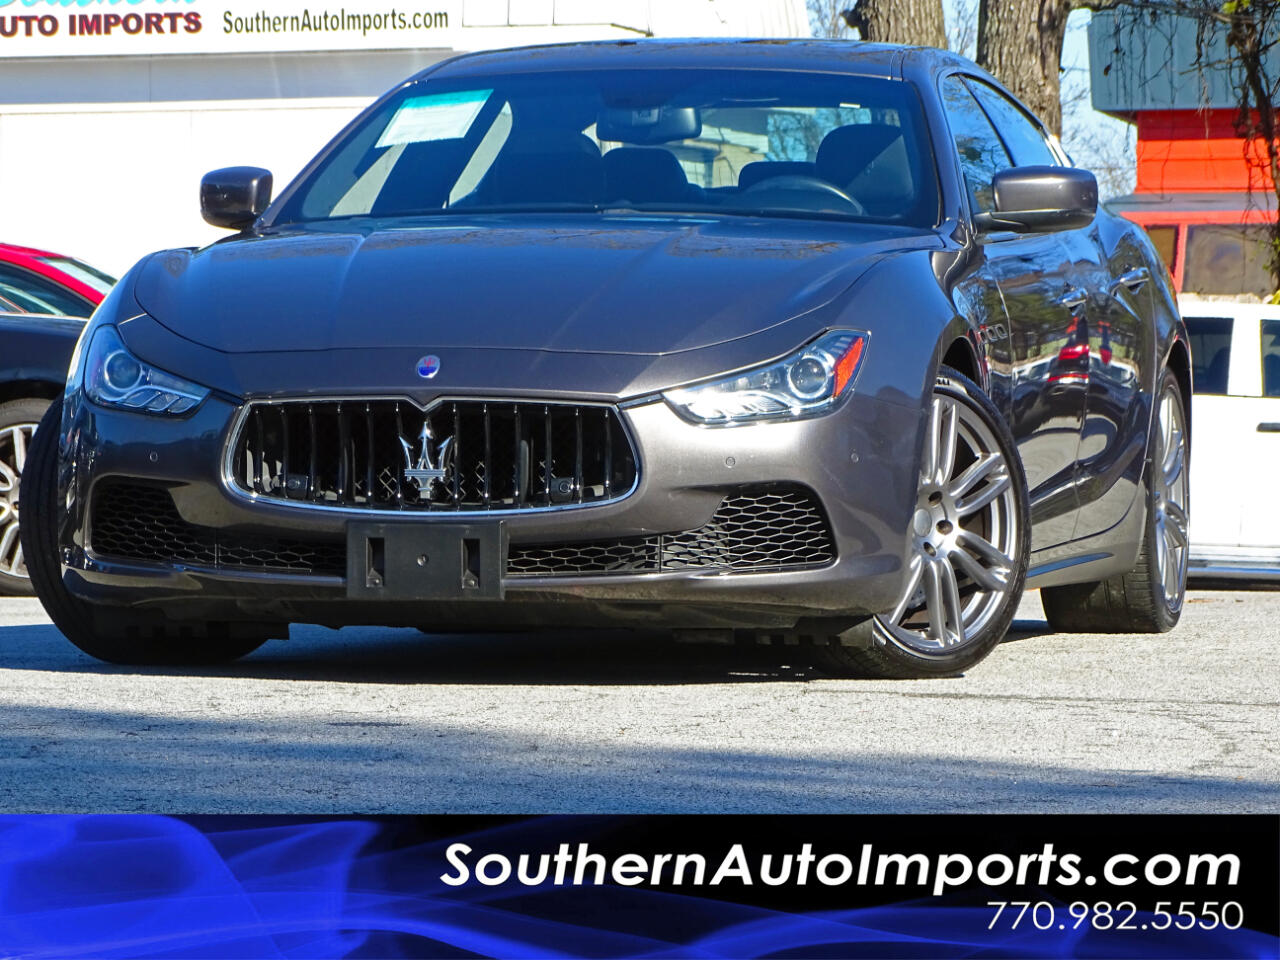 2015 Maserati Ghibli S Q4 w/Navigation 1owner Sport Options